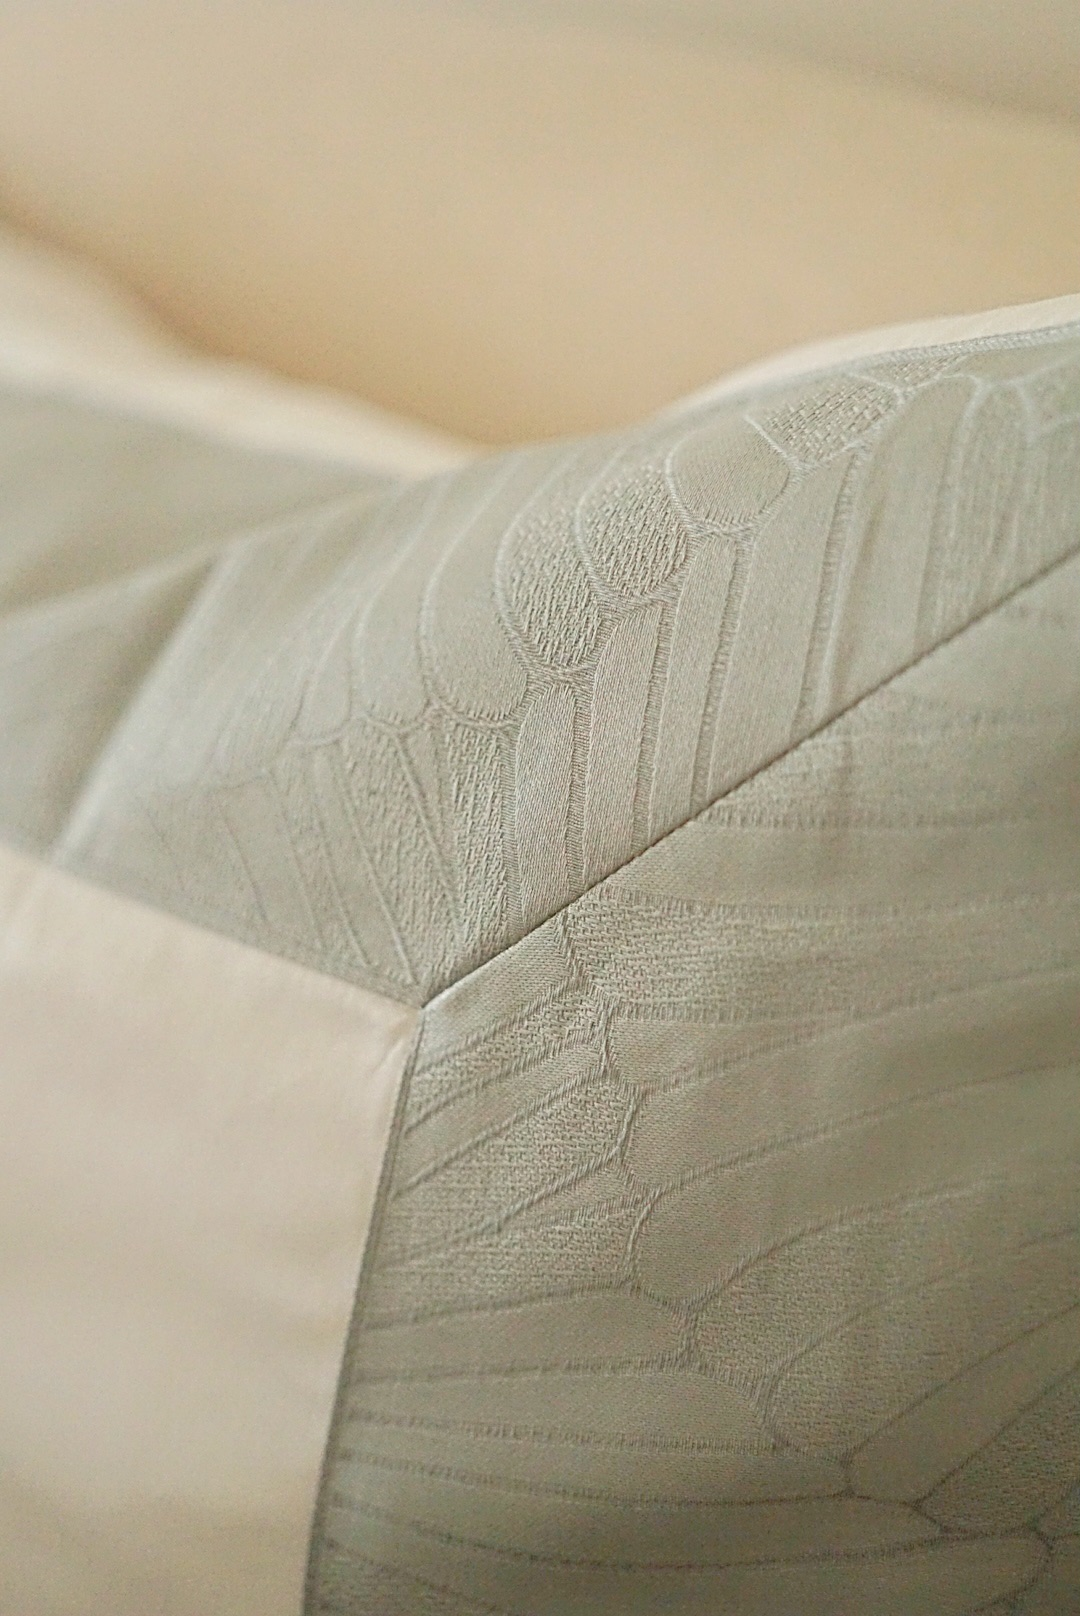 frette bedding   Master Bedroom Upgrades with Frette Bedding featured by top Dallas lifestyle blog Style Your Senses